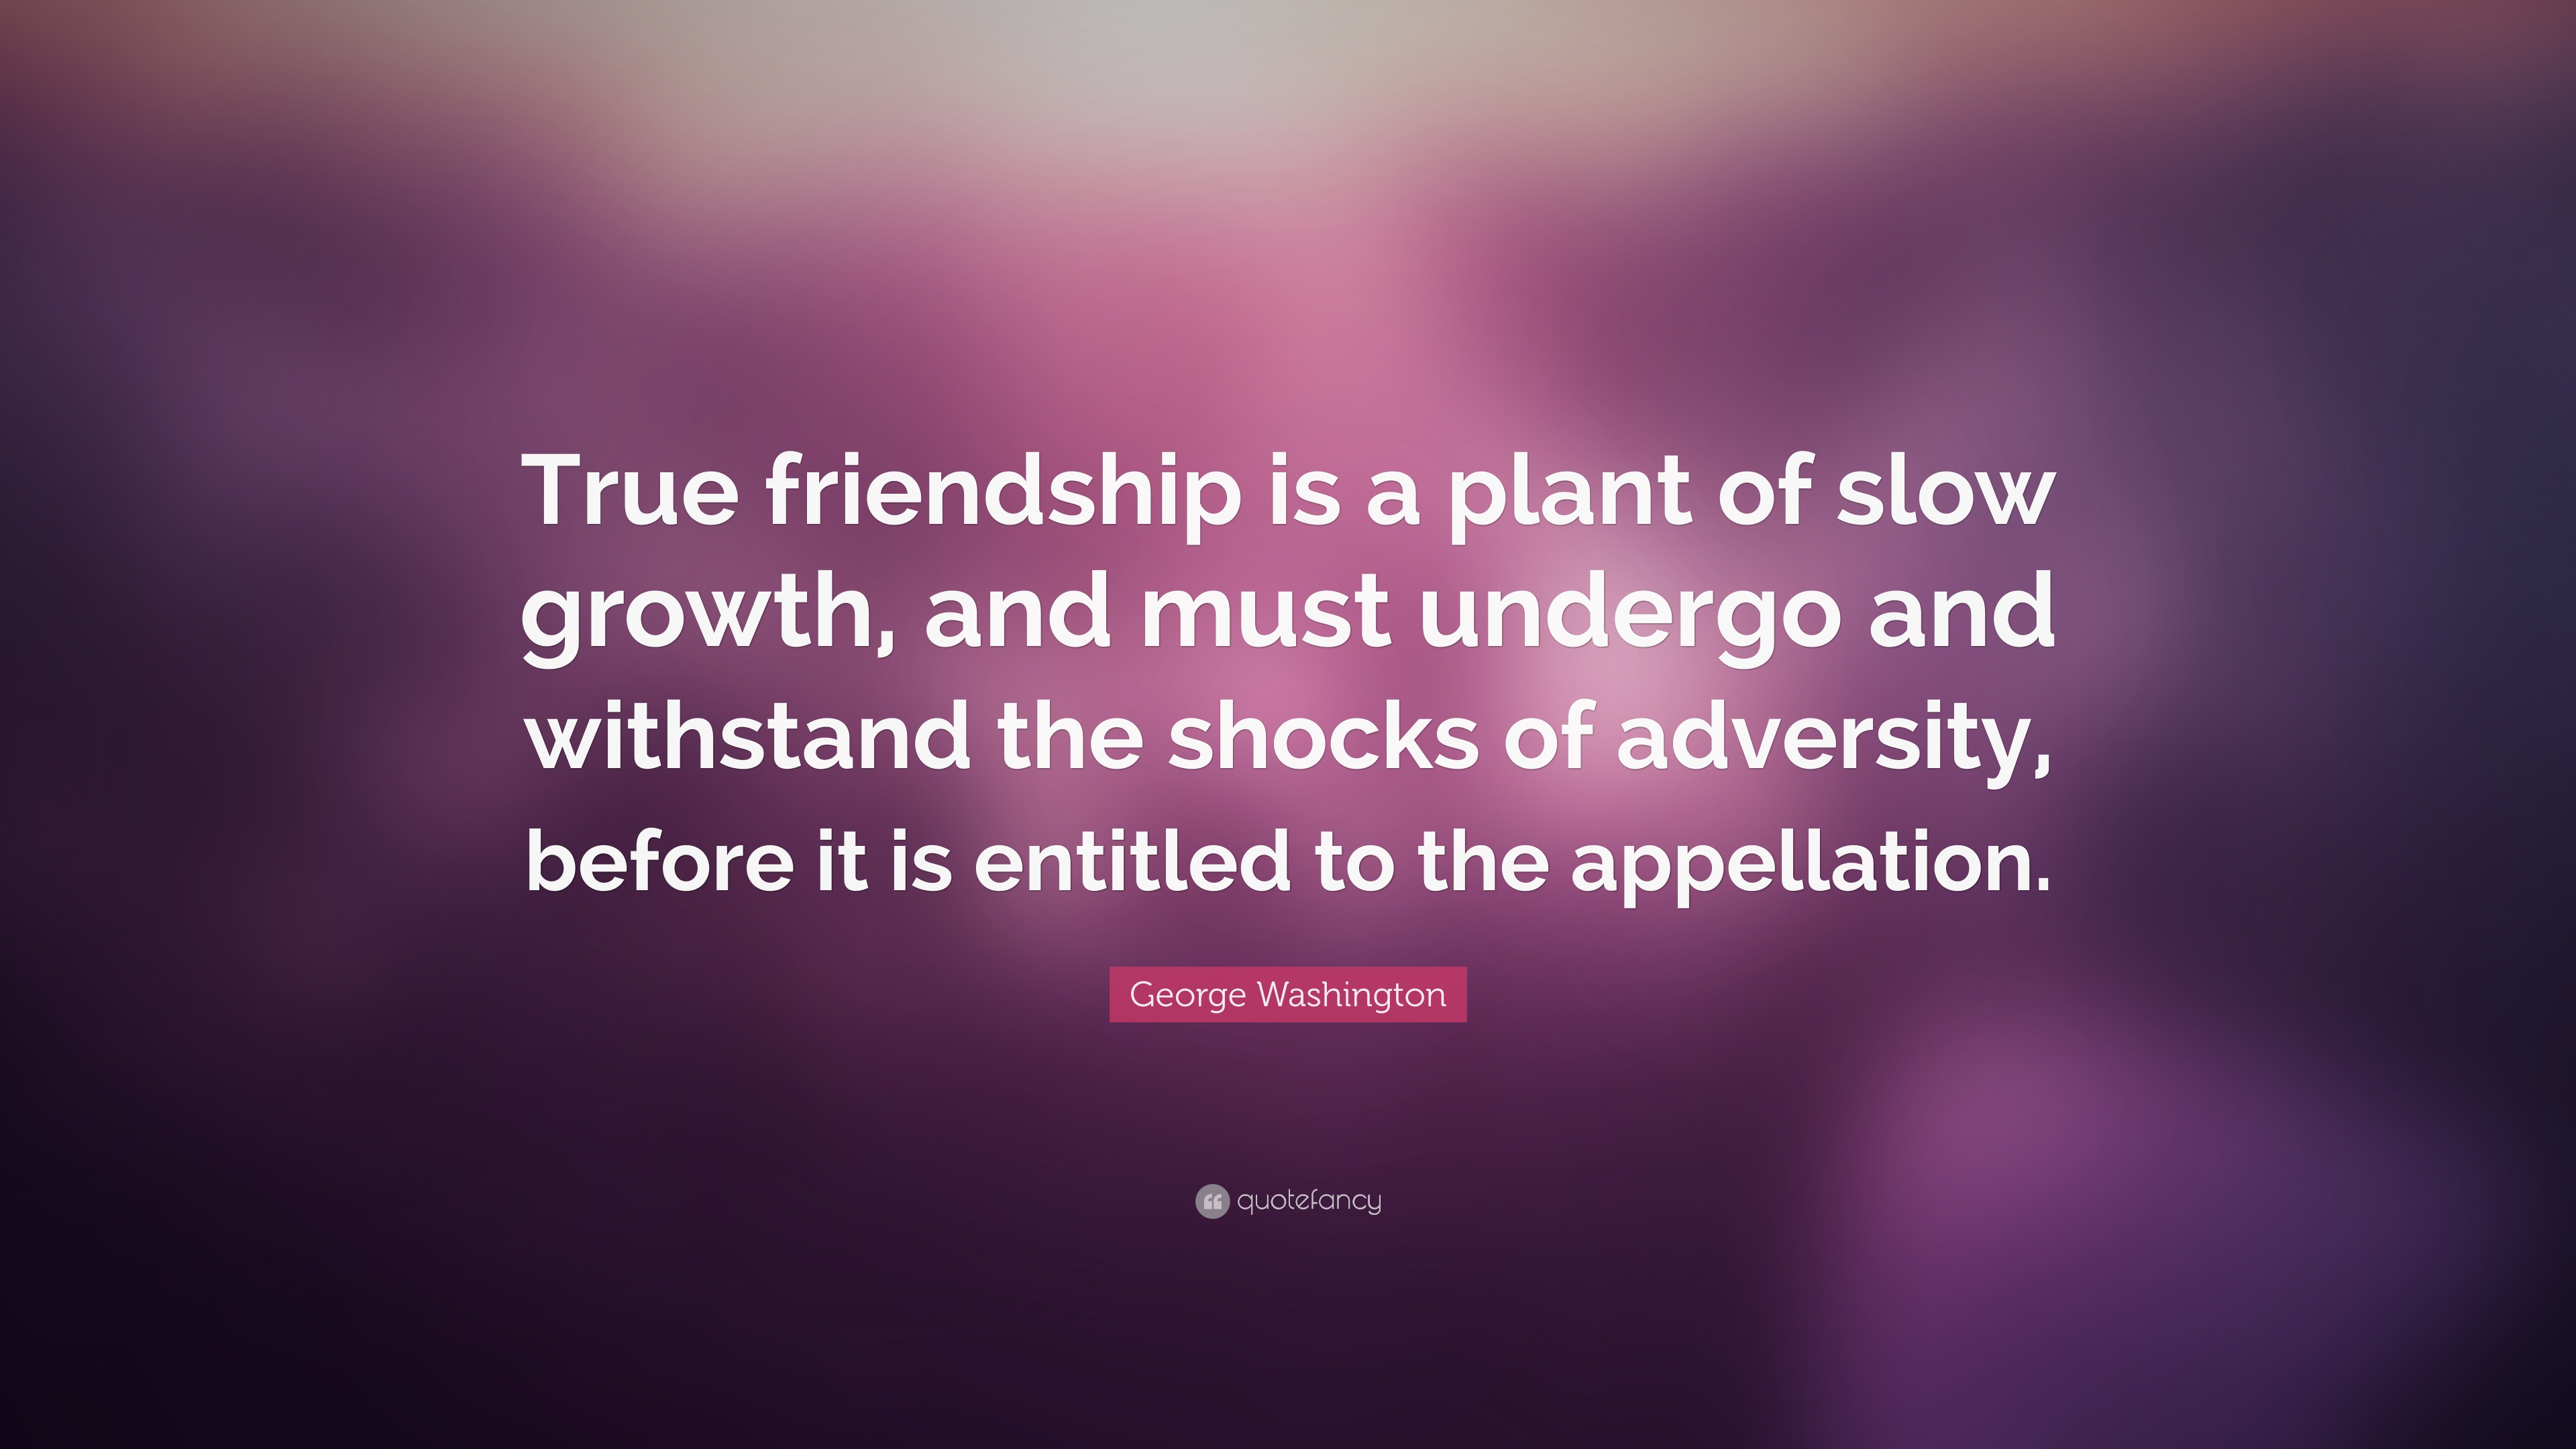 Quote About True Friendship George Washington Quote True Friendship George Washington